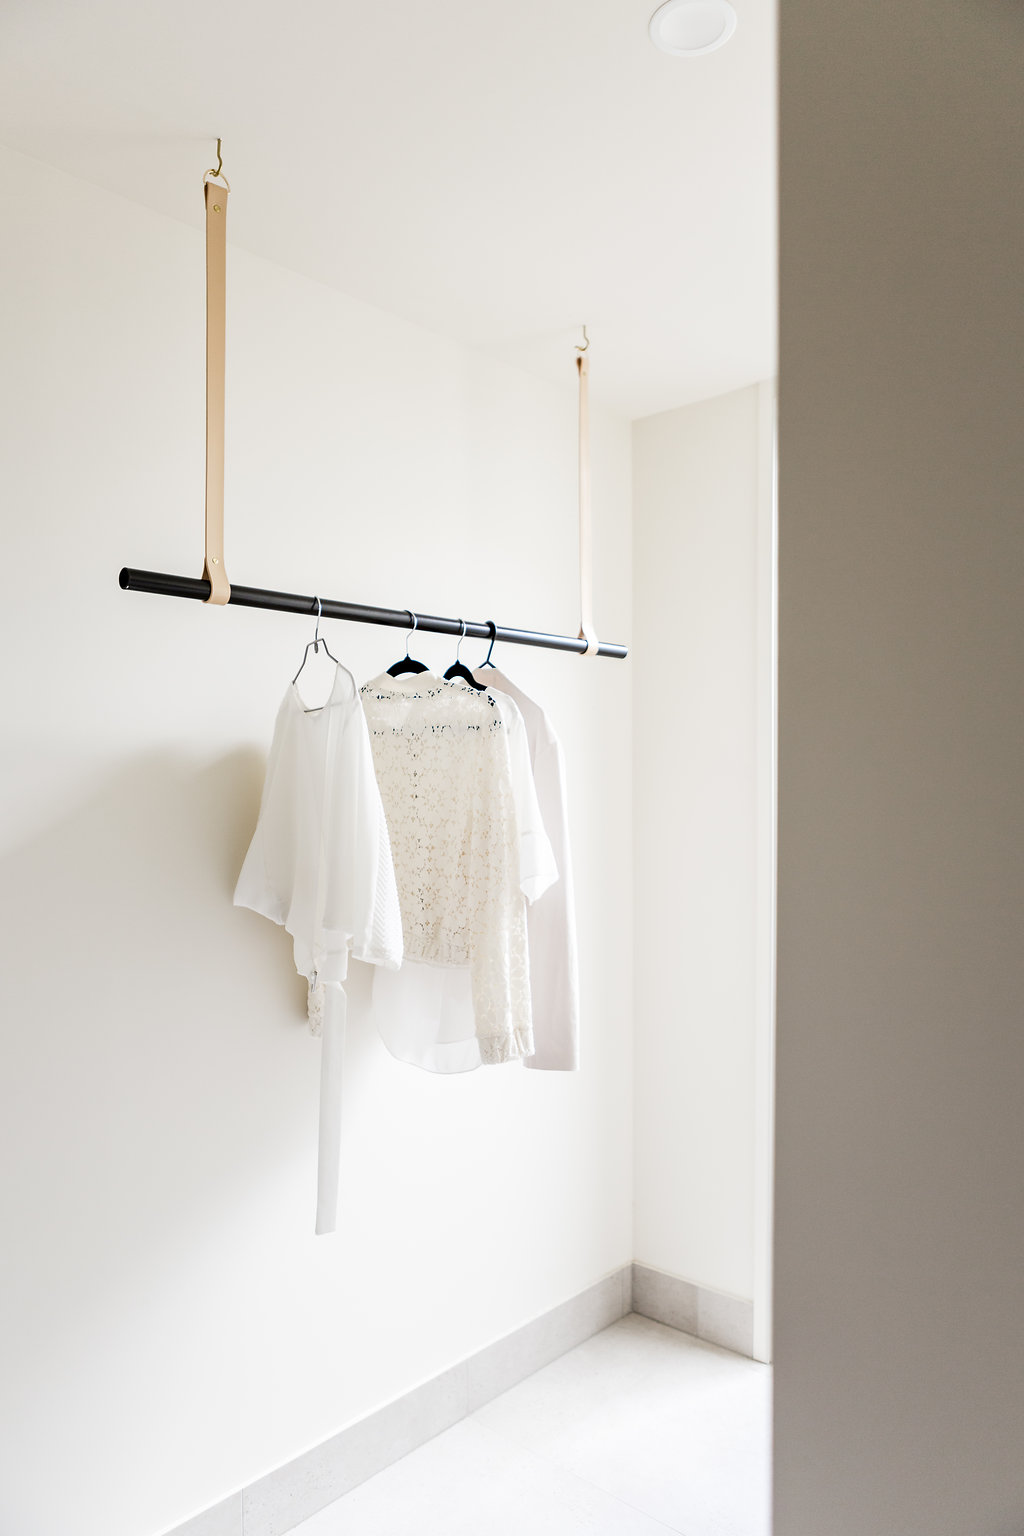 Leather Hanging Rail By H Amp G Designs Nude Leather Suede